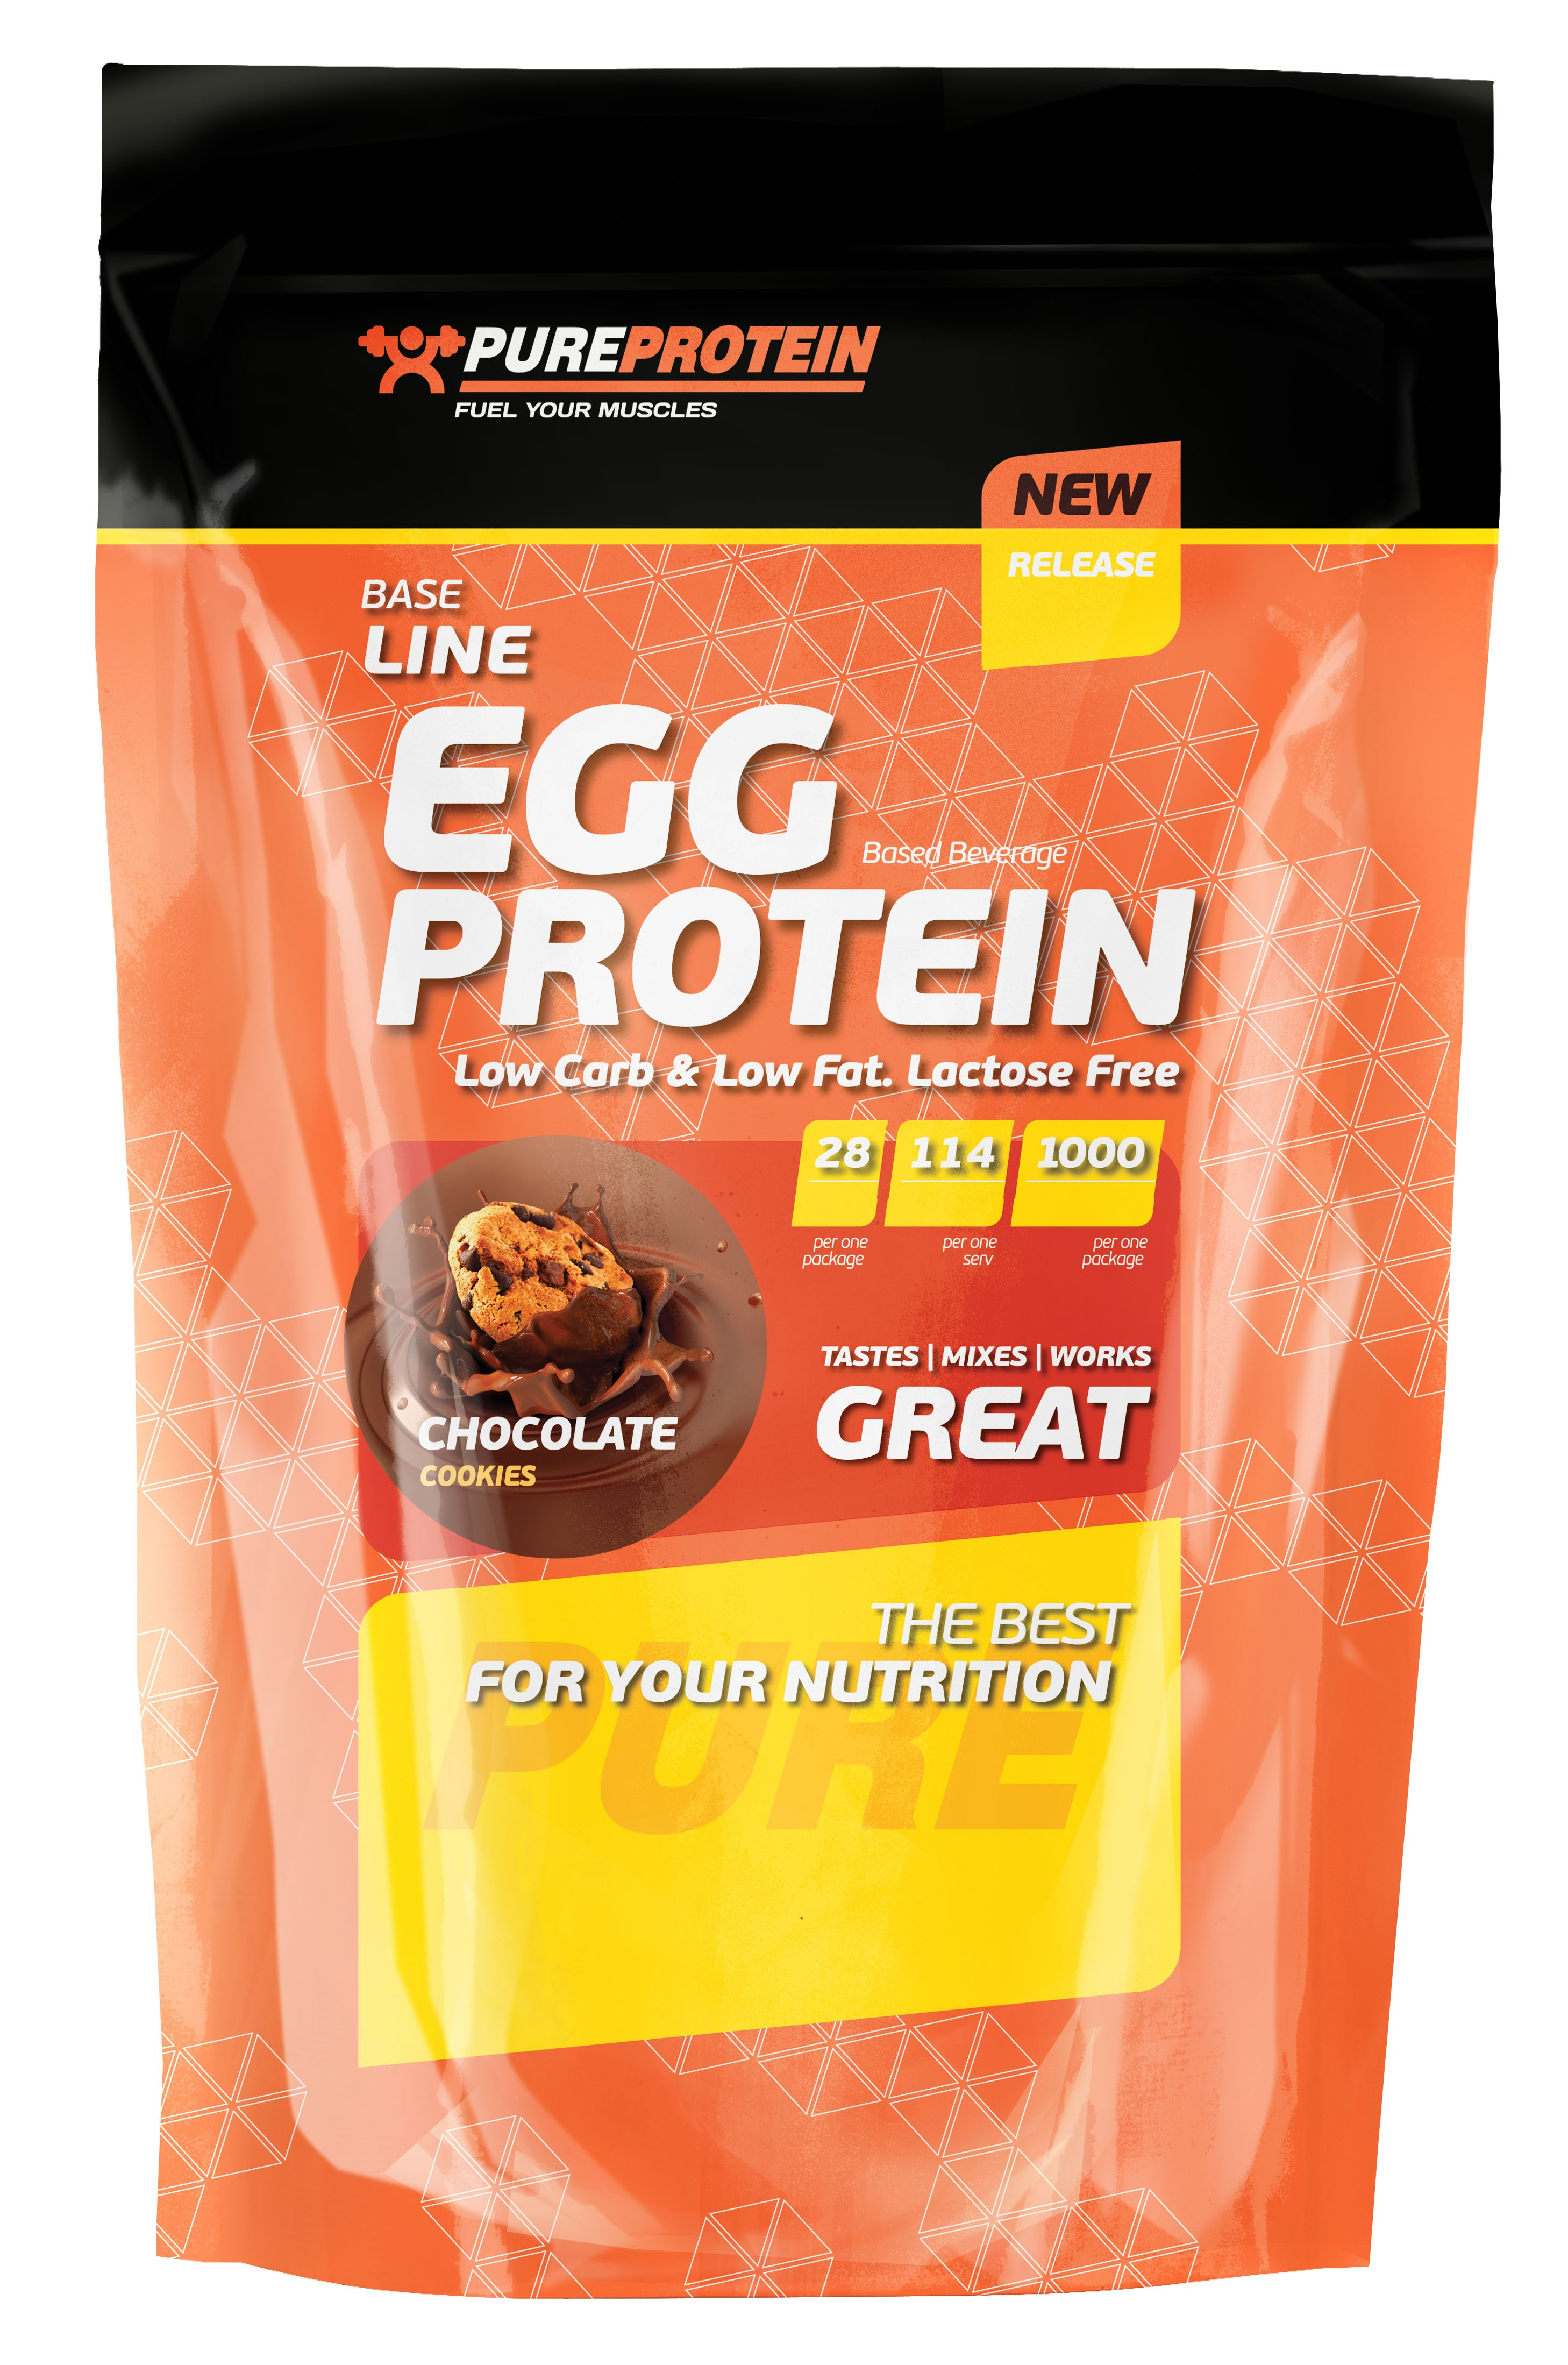 Egg Protein (Pure Protein)